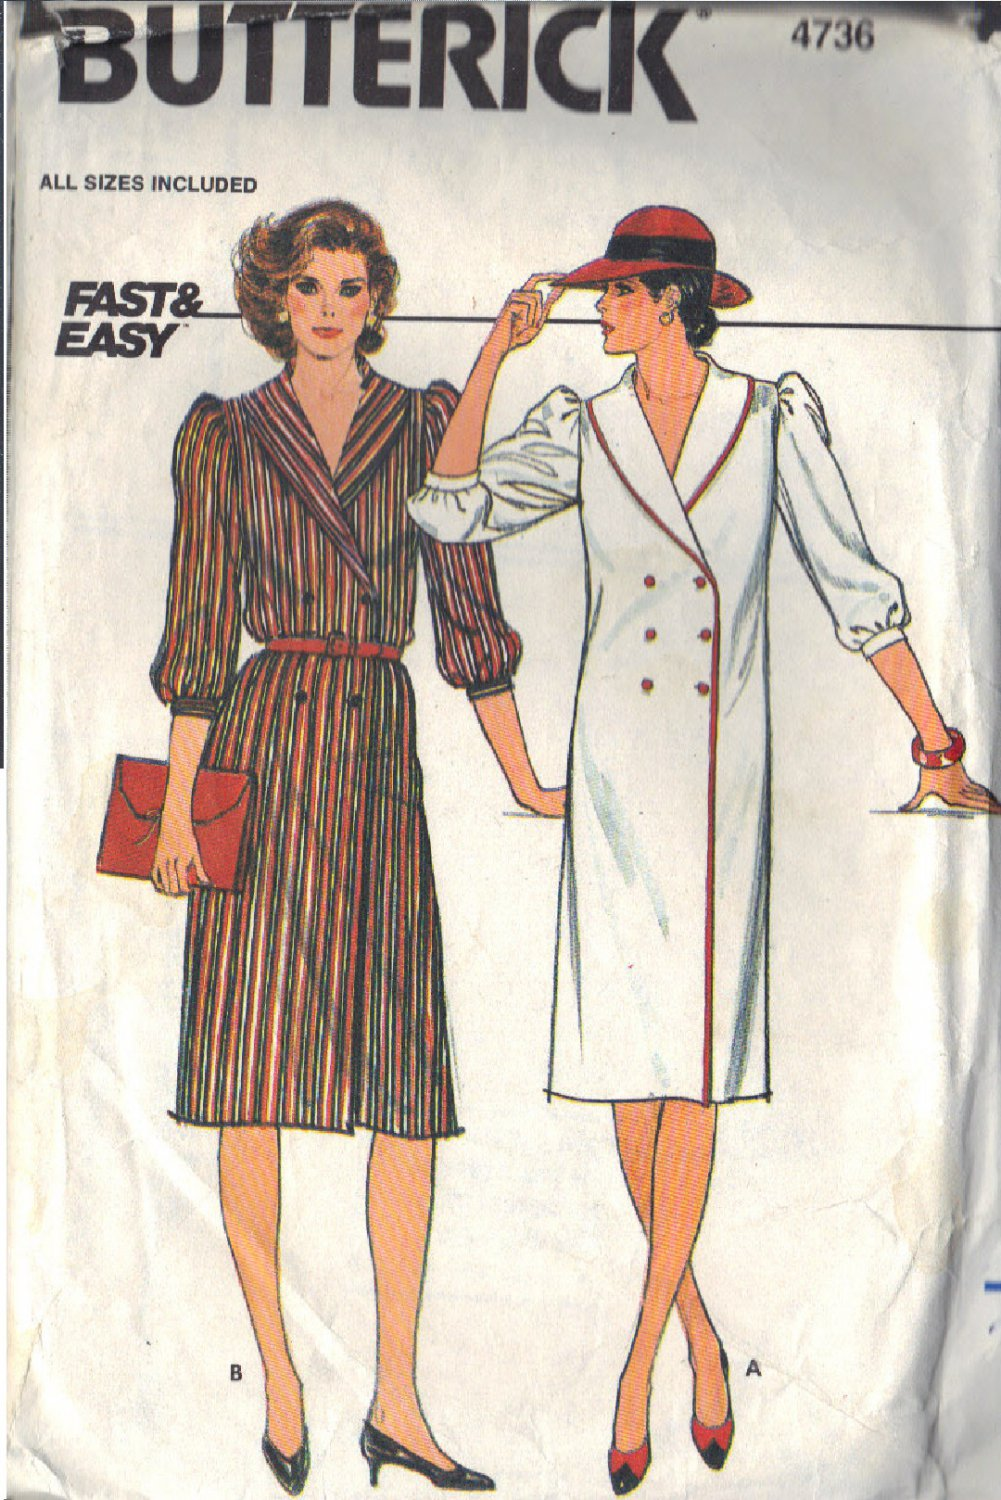 BUTTERICK PATTERN 4736 SIZES 8/10/12 MISSES' DRESS in 2 VARIATIONS